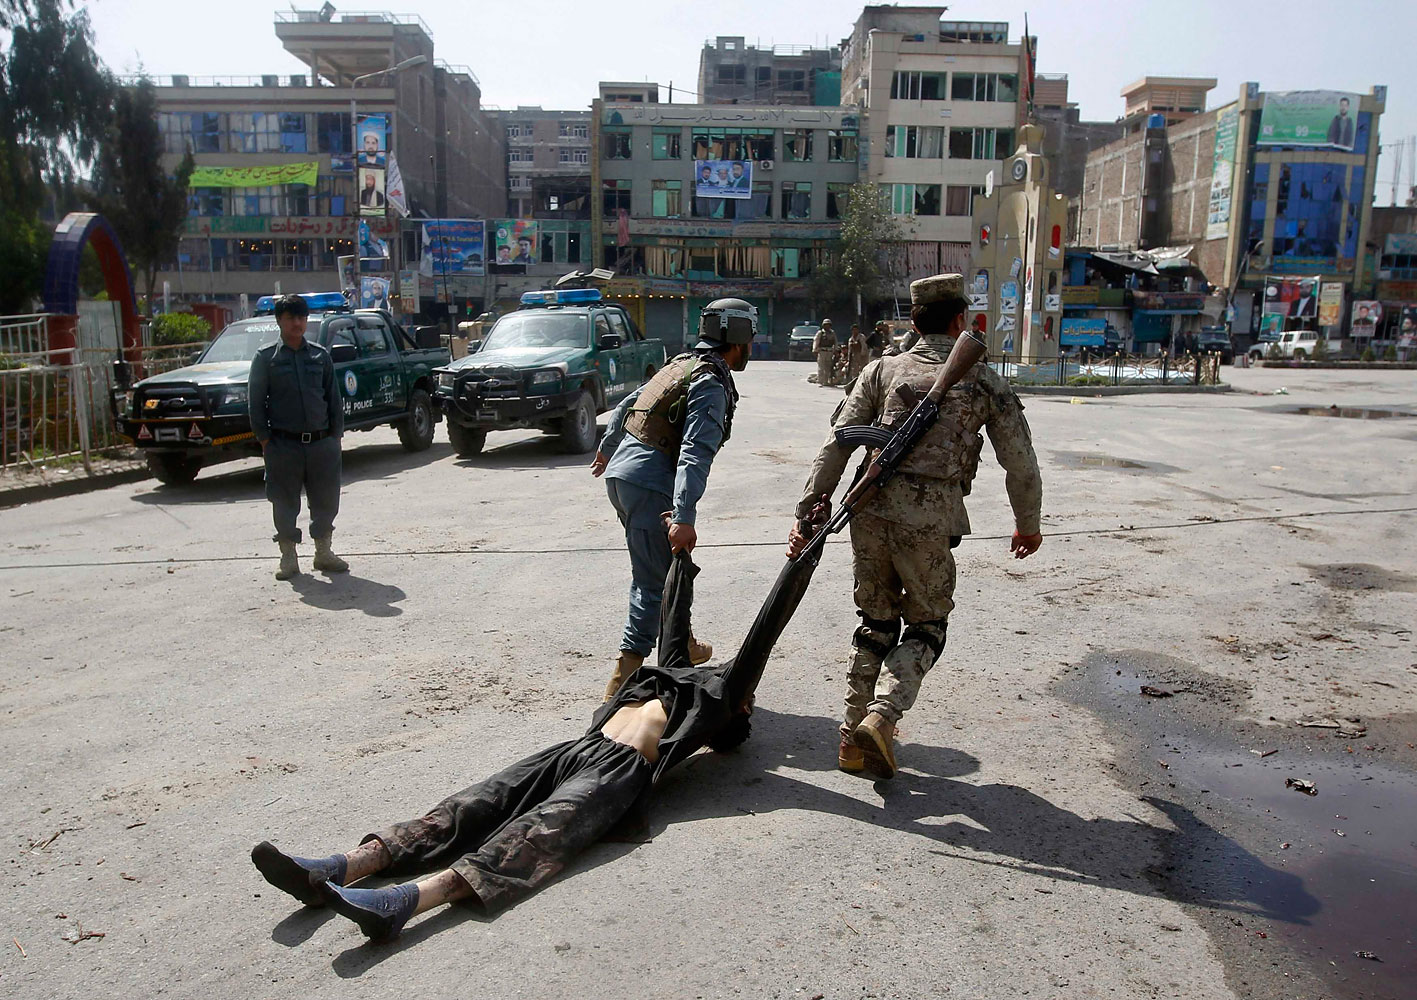 Afghan policemen remove the dead body of a Taliban insurgent from the site of a suicide car bomb attack in Jalalabad province, March 20, 2014.